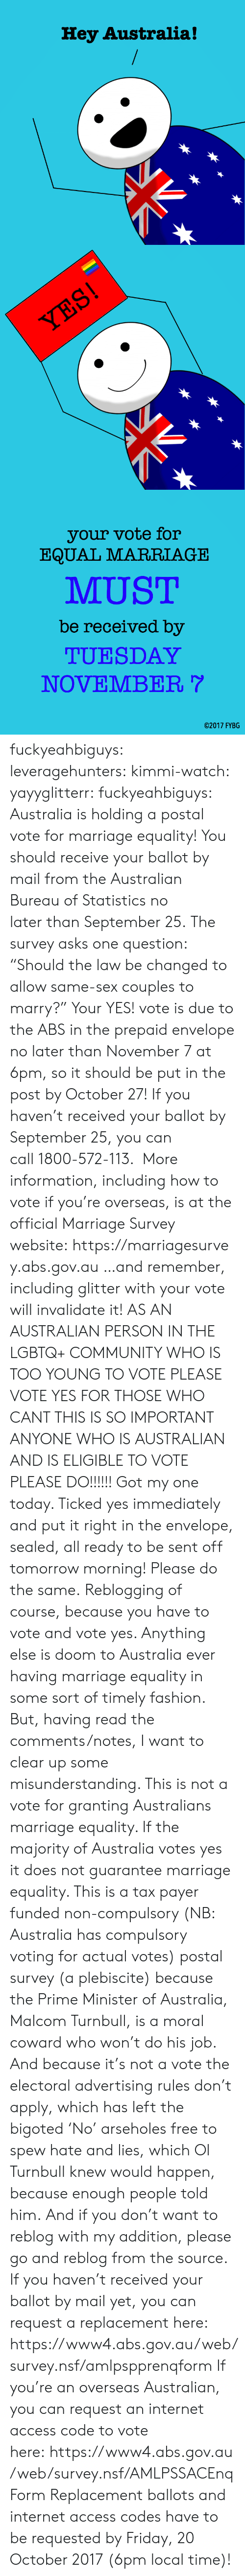 """Community, Fashion, and Friday: Hey Australia!   your vote for  EQUAL MARRIAGE  MUST  be received by  TUESDAY  NOVEMBER  02017 FYBG fuckyeahbiguys:  leveragehunters:  kimmi-watch:  yayyglitterr:  fuckyeahbiguys:  Australia is holding a postal vote for marriage equality! You should receive your ballot by mail from the Australian Bureau of Statistics no laterthan September 25.The survey asks one question: """"Should the law be changed to allow same-sex couples to marry?"""" Your YES! vote is due to the ABS in the prepaid envelope no later than November 7 at 6pm, so it should be put in the post by October 27! Ifyou haven't received your ballot by September 25, you can call1800-572-113. More information, including how to vote if you're overseas, is at the official Marriage Survey website:https://marriagesurvey.abs.gov.au …and remember, including glitter with your vote will invalidate it!  AS AN AUSTRALIAN PERSON IN THE LGBTQ+ COMMUNITY WHO IS TOO YOUNG TO VOTE PLEASE VOTE YES FOR THOSE WHO CANT THIS IS SO IMPORTANT ANYONE WHO IS AUSTRALIAN AND IS ELIGIBLE TO VOTE PLEASE DO!!!!!!  Got my one today. Ticked yes immediately and put it right in the envelope, sealed, all ready to be sent off tomorrow morning! Please do the same.  Reblogging of course, because you have to vote and vote yes. Anything else is doom to Australia ever having marriage equality in some sort of timely fashion. But, having read the comments/notes, I want to clear up some misunderstanding. This is not a vote for granting Australians marriage equality. If the majority of Australia votes yes it does not guarantee marriage equality. This is a tax payer funded non-compulsory (NB: Australia has compulsory voting for actual votes) postal survey (a plebiscite) because the Prime Minister of Australia, Malcom Turnbull, is a moral coward who won't do his job. And because it's not a vote the electoral advertising rules don't apply, which has left the bigoted 'No' arseholes free to spew hate and lies, which Ol Turnbull k"""